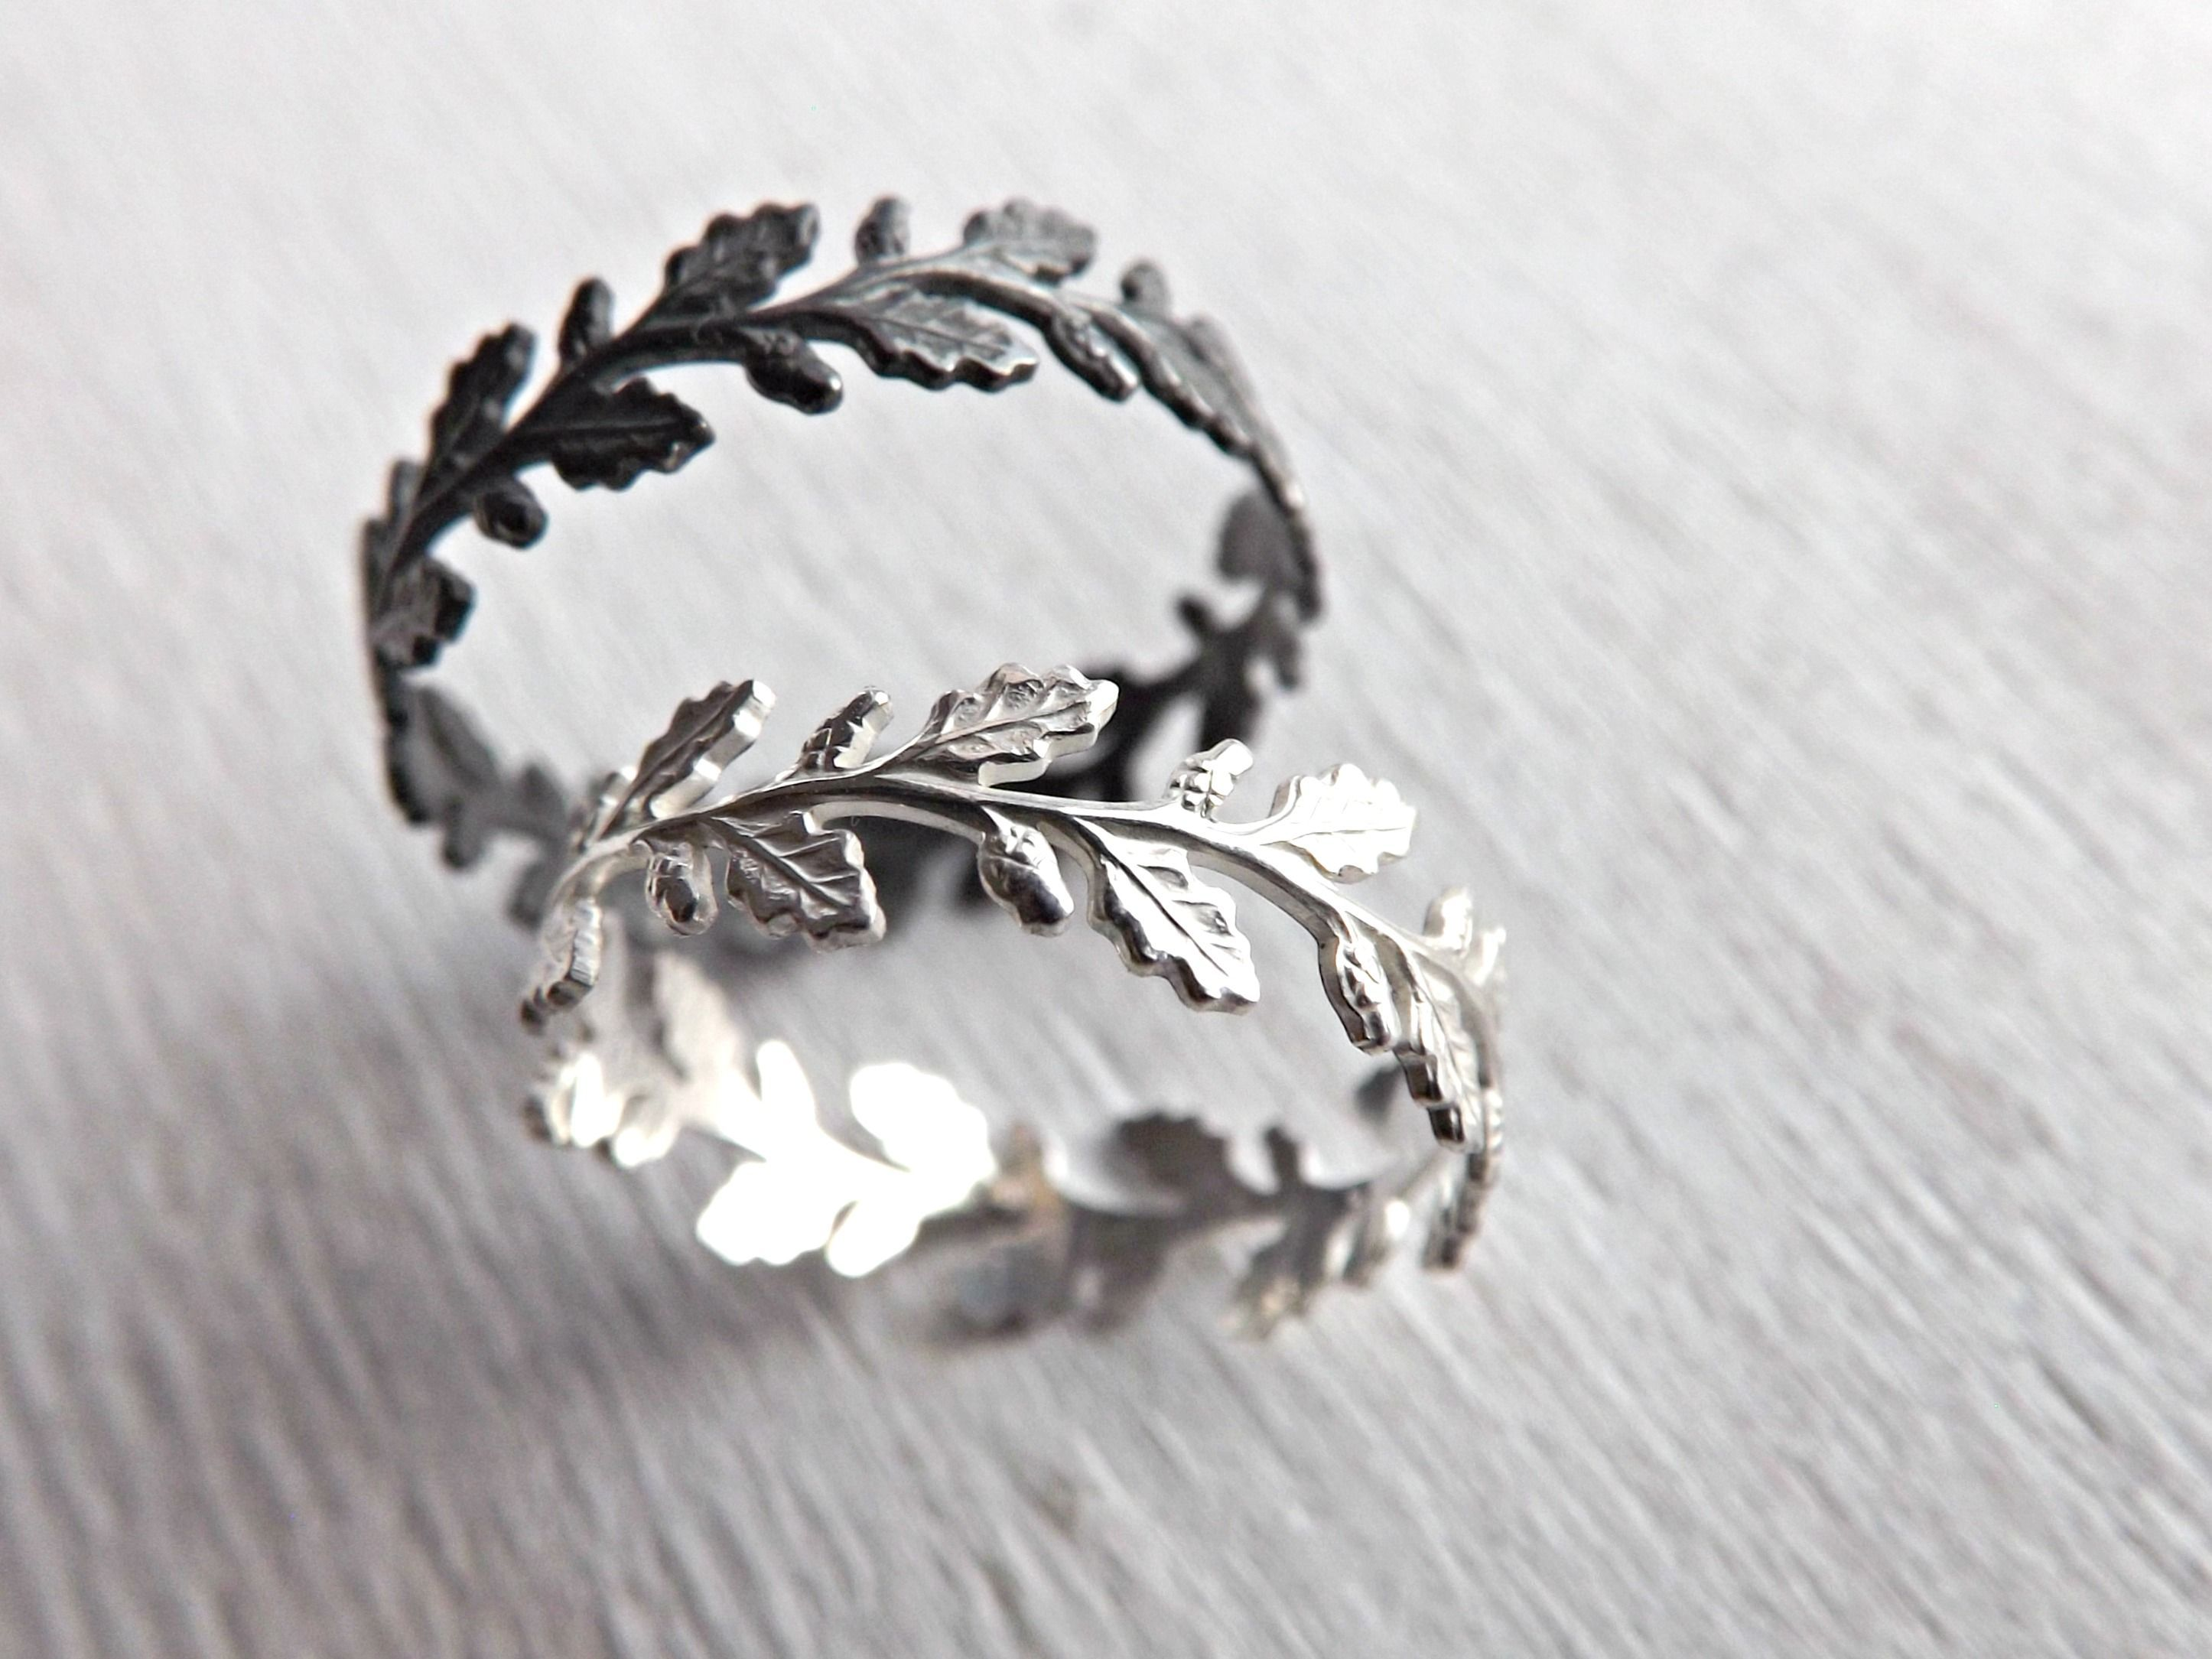 handmade a or lace rings buy gift for crazyassjewelry custom made engagemen pattern ring unique oak leaf by silver engagement sturdy